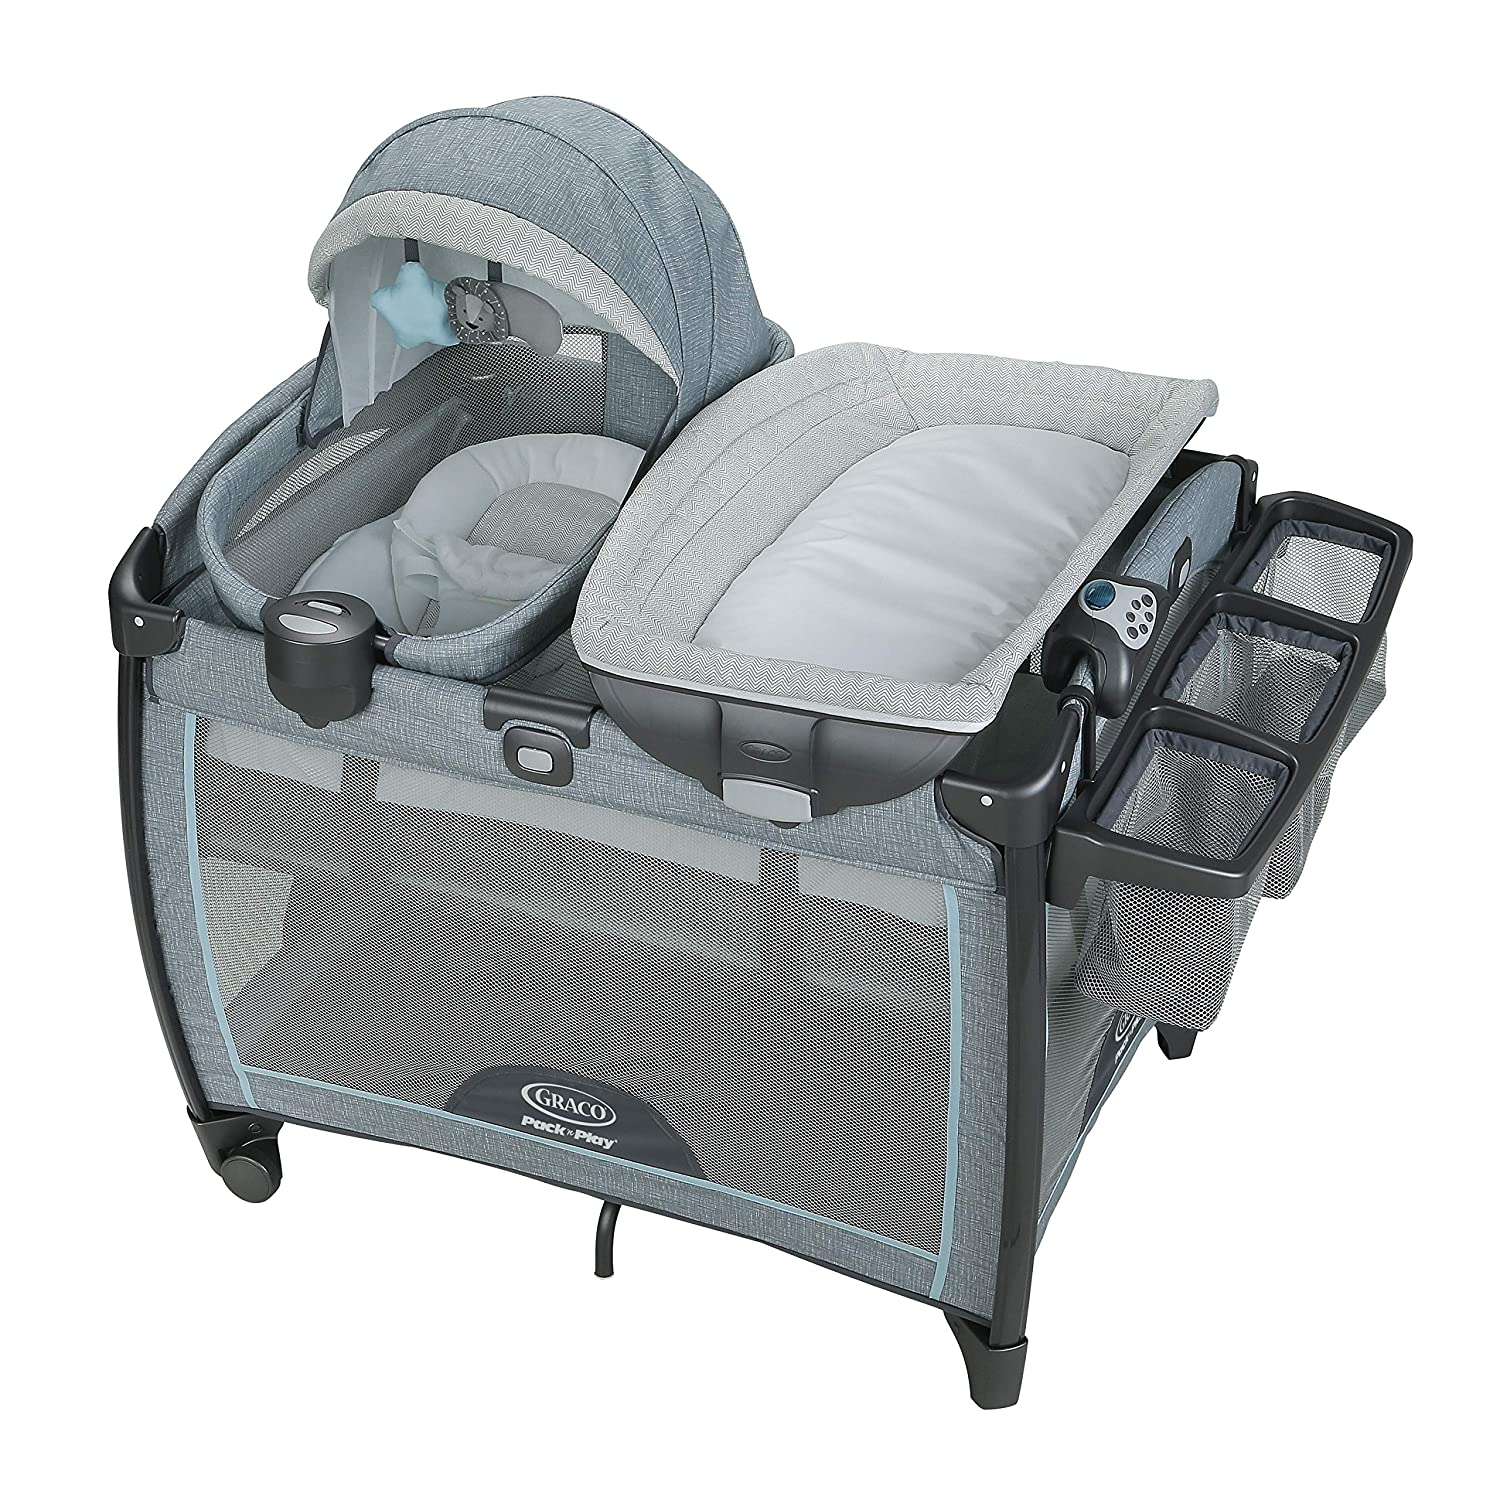 Graco Pack N Play Snuggle Seat Playard Layne Baby